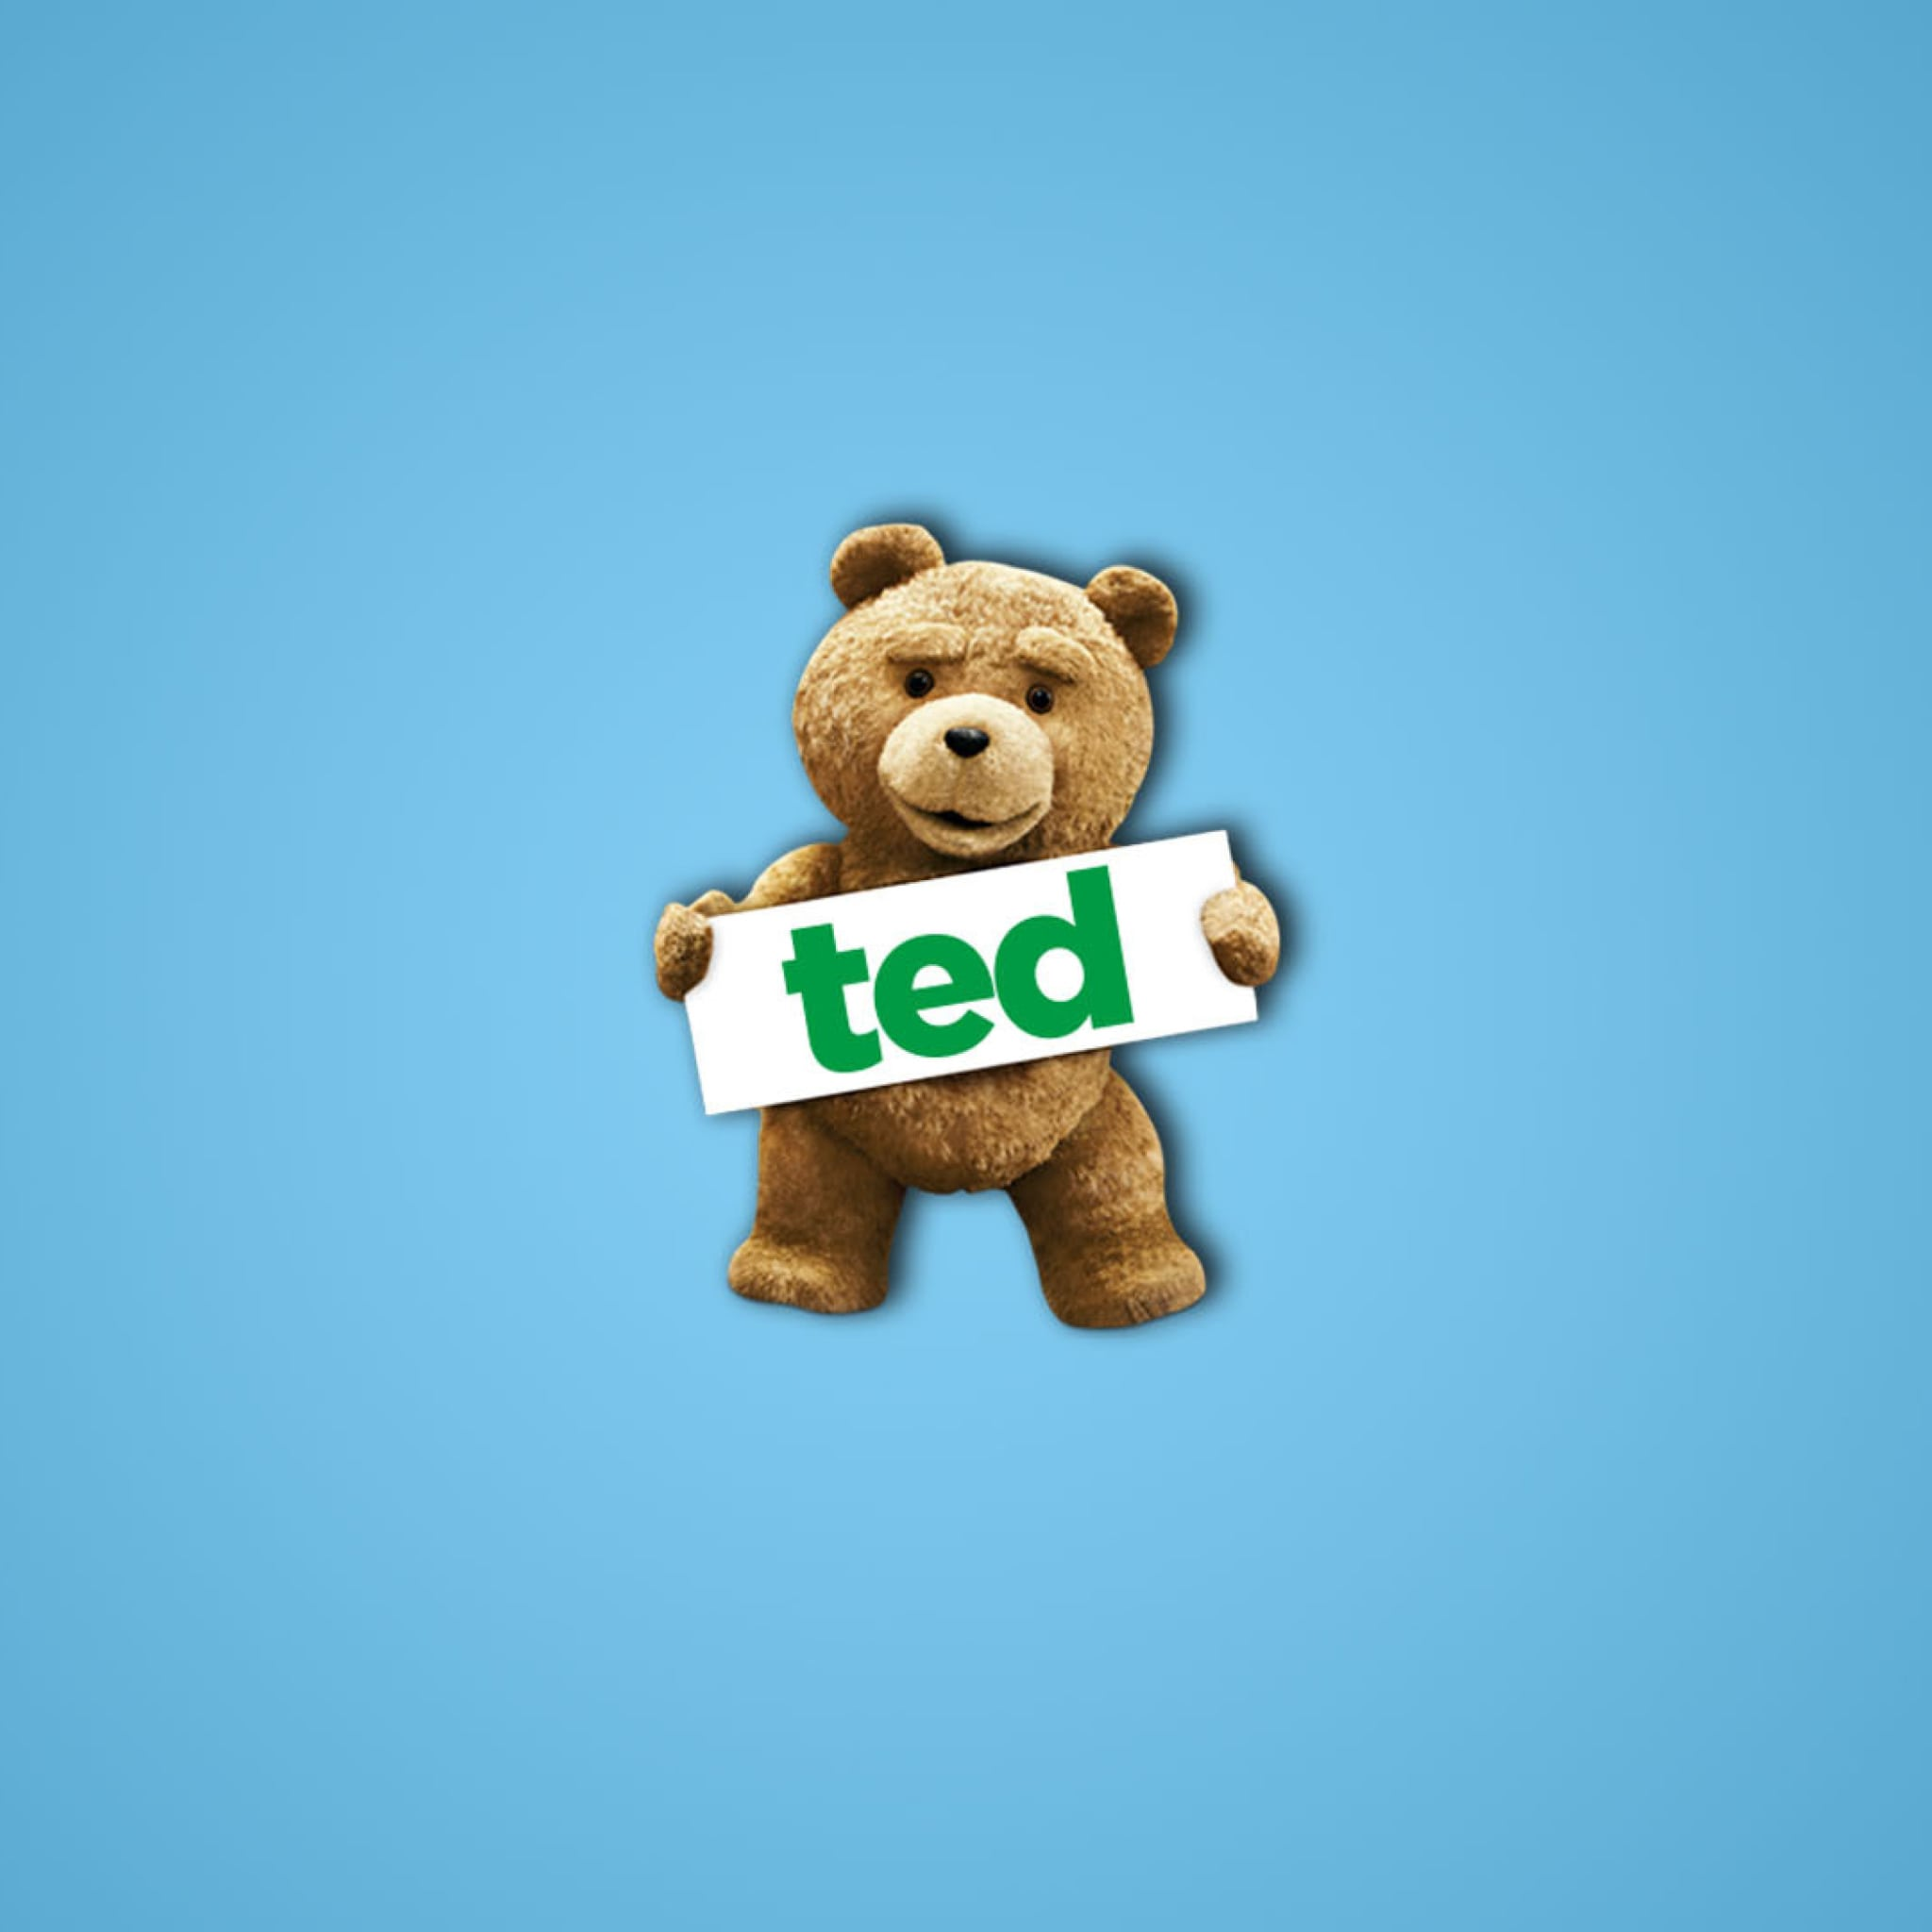 Ted 2 widescreen for desktop